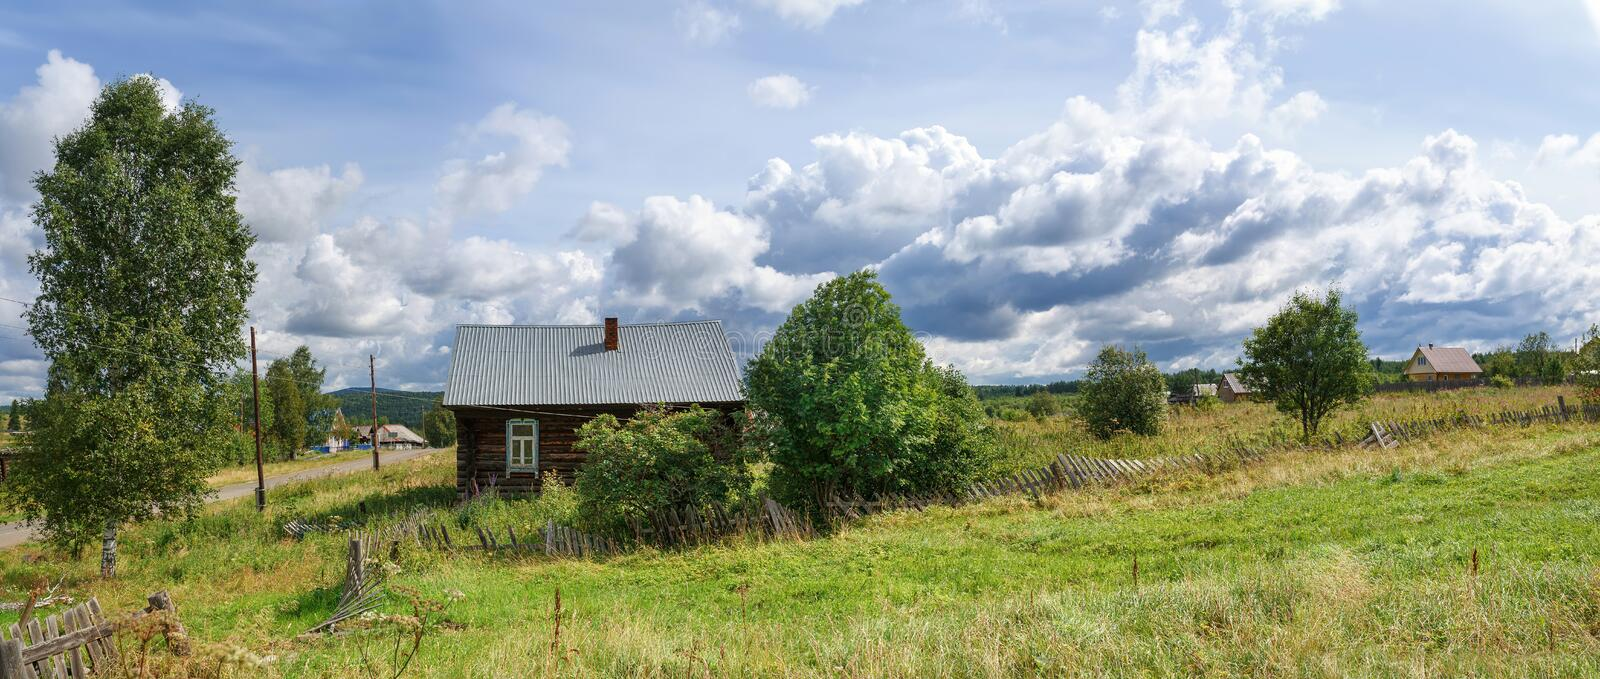 Panoramic view of the russian village in summer. Village of Visim, Sverdlovsk region, Russia stock photo